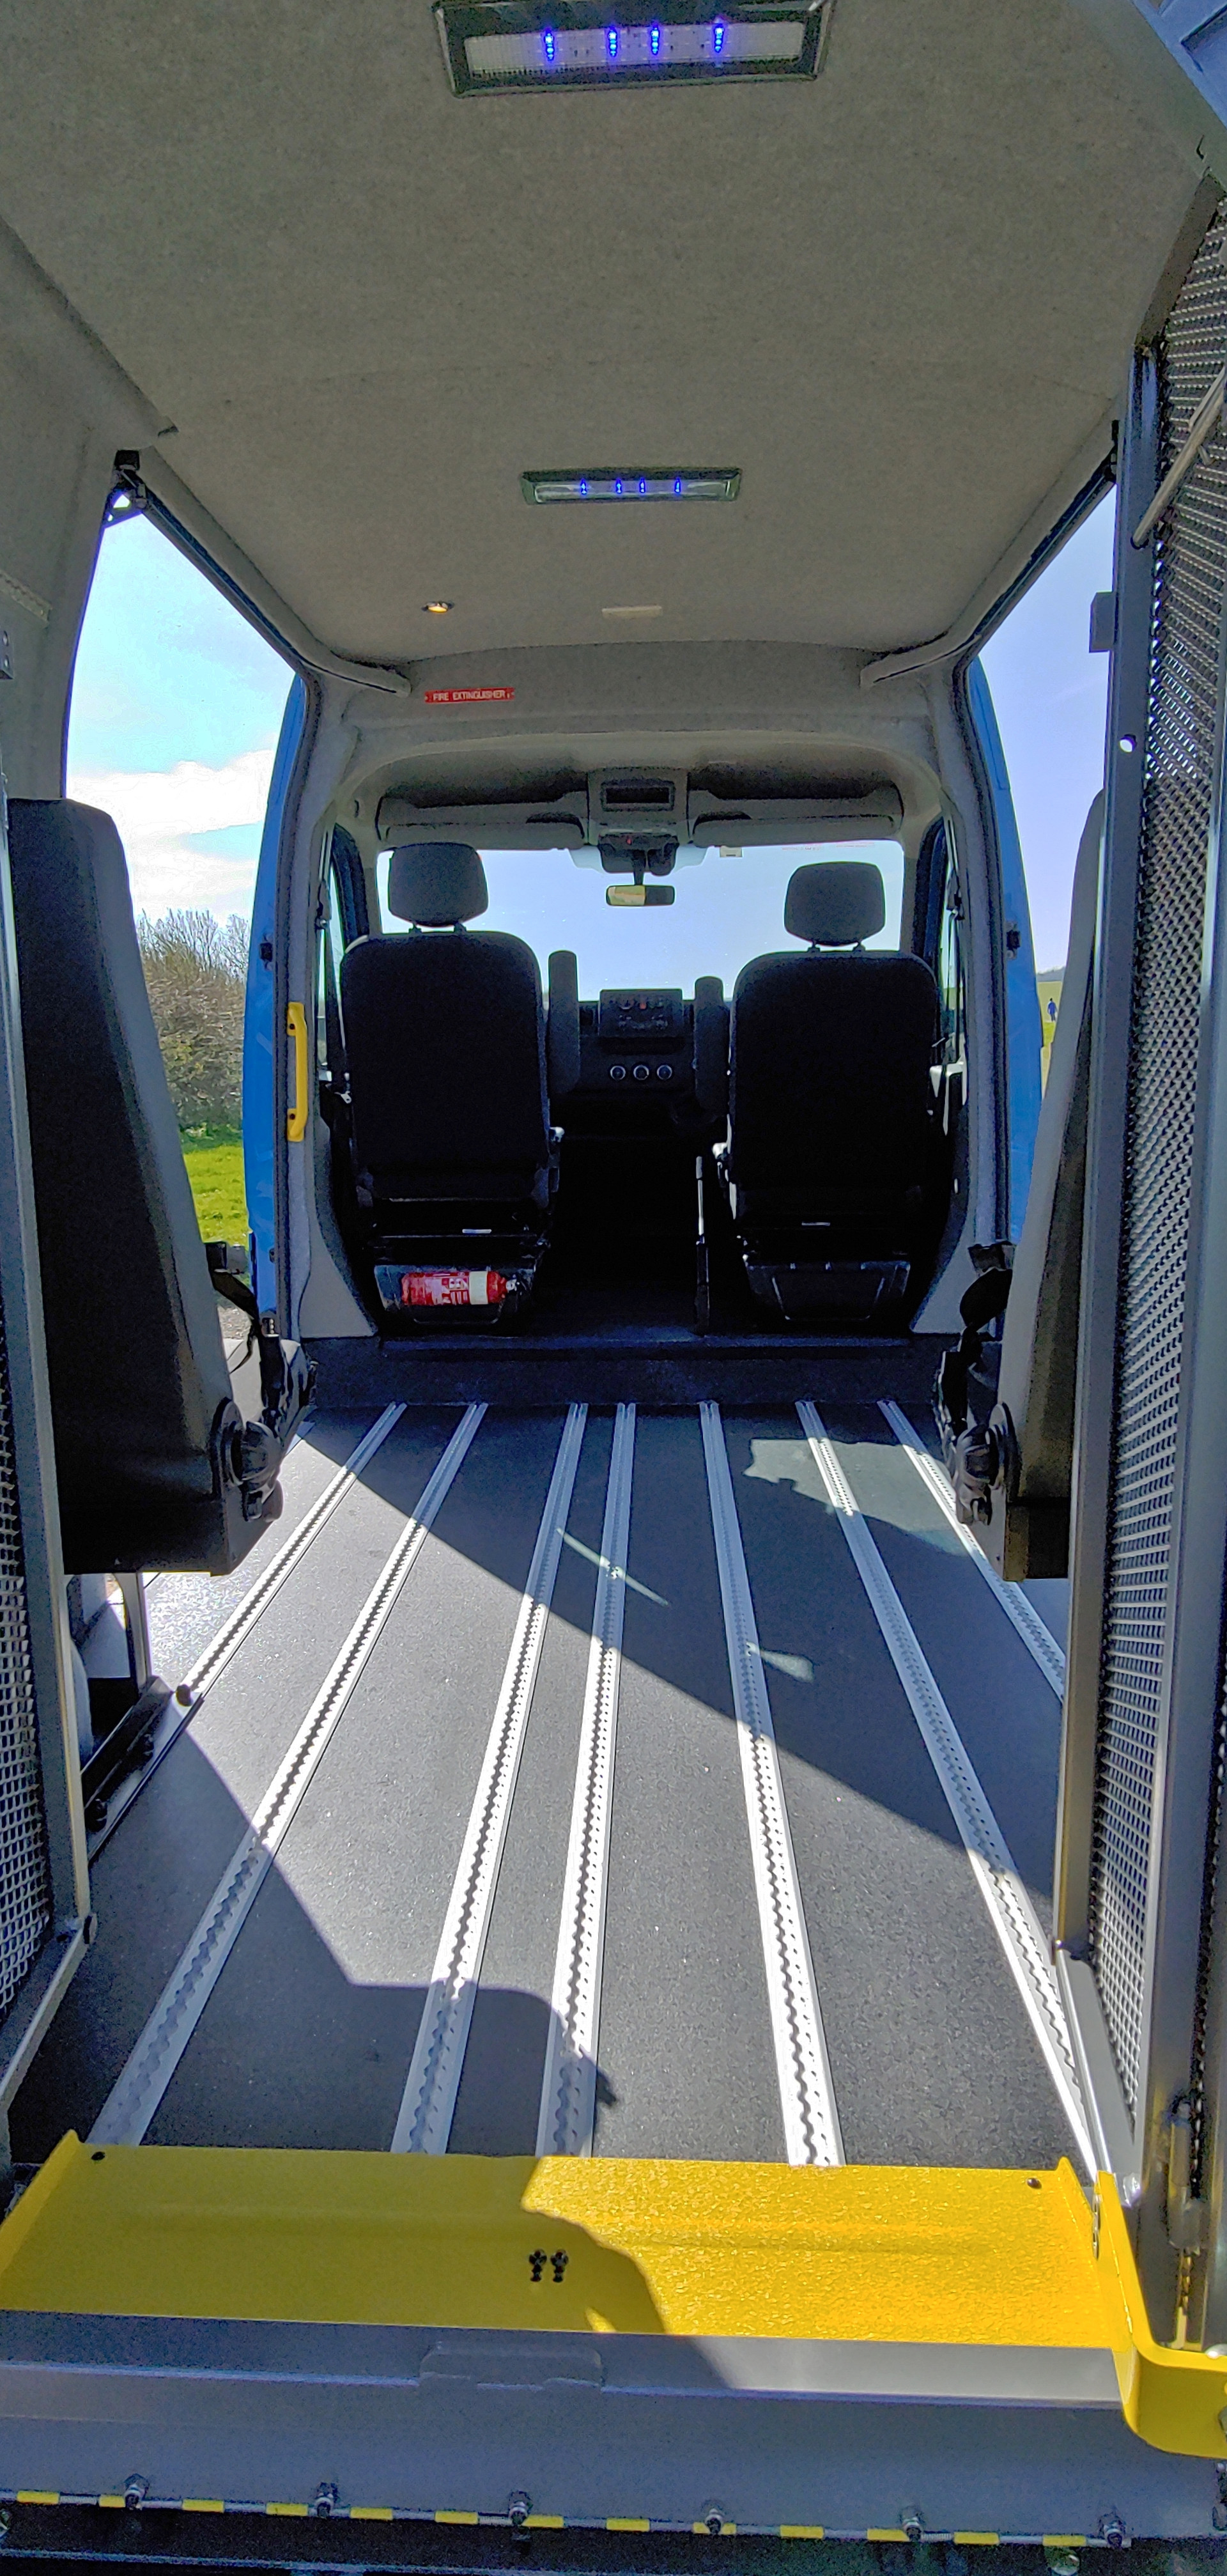 Rear access via tail lift in Warnerbus conversion